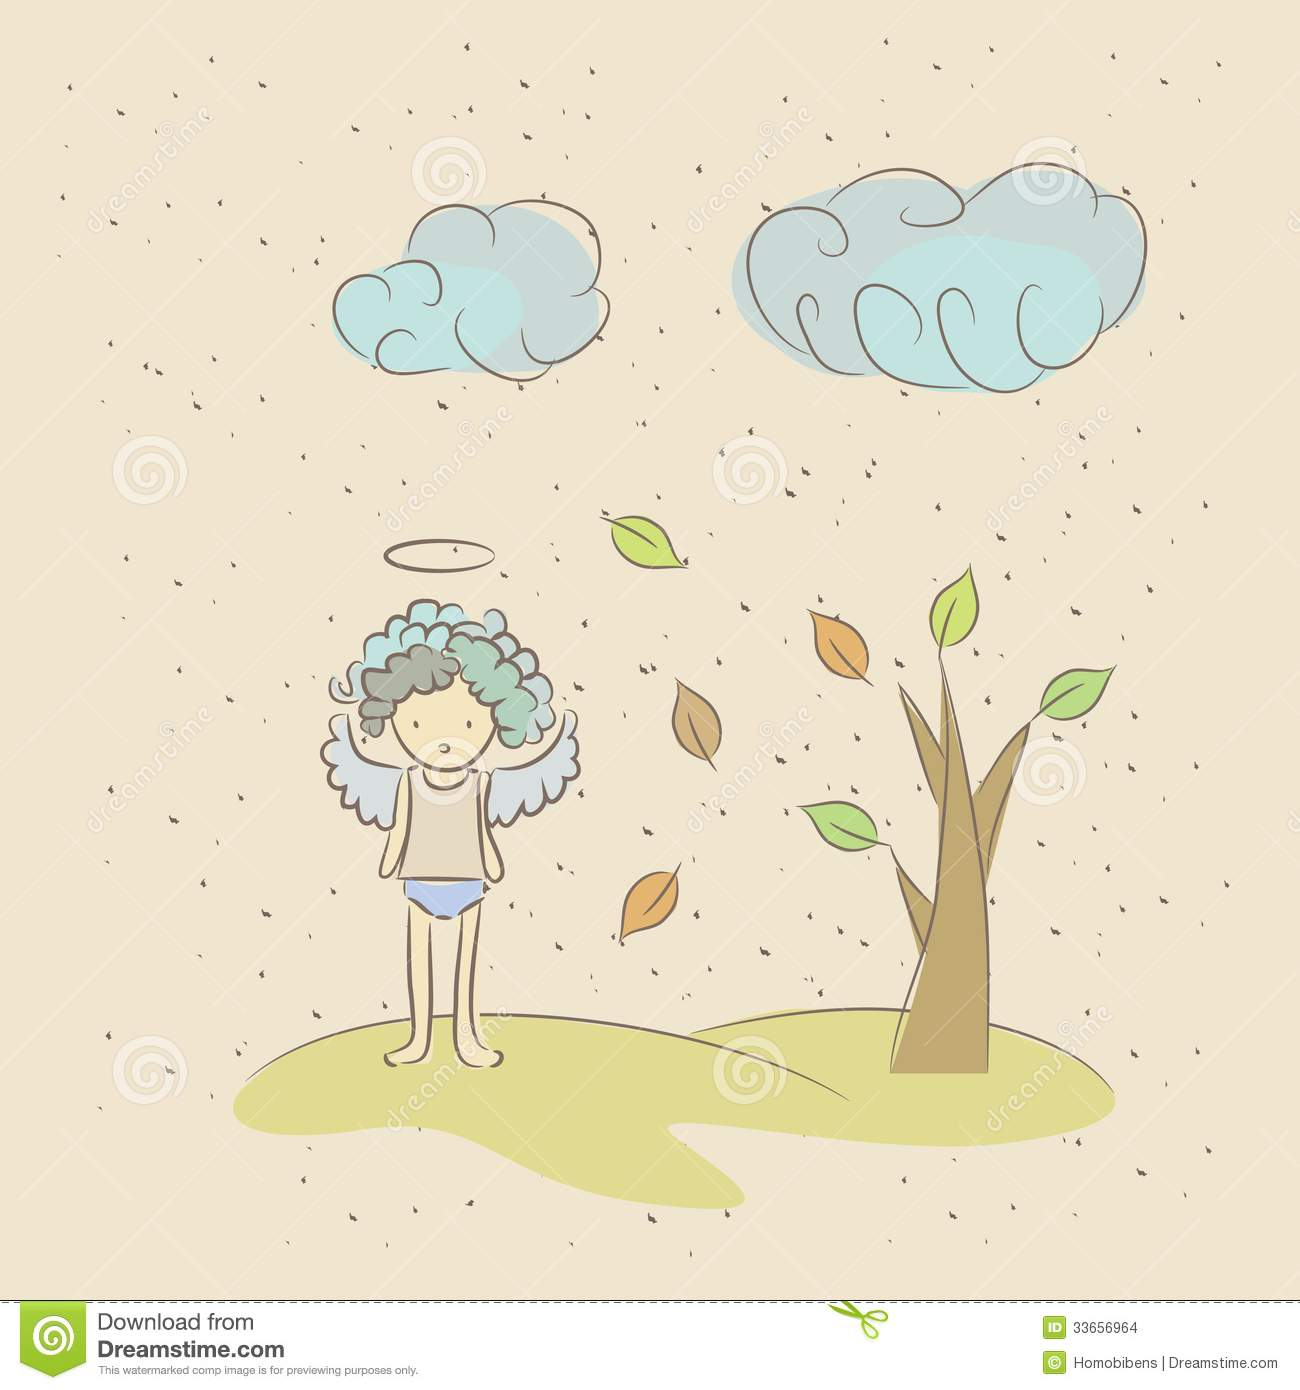 Cartoon illustration of an angel sad because of the fall